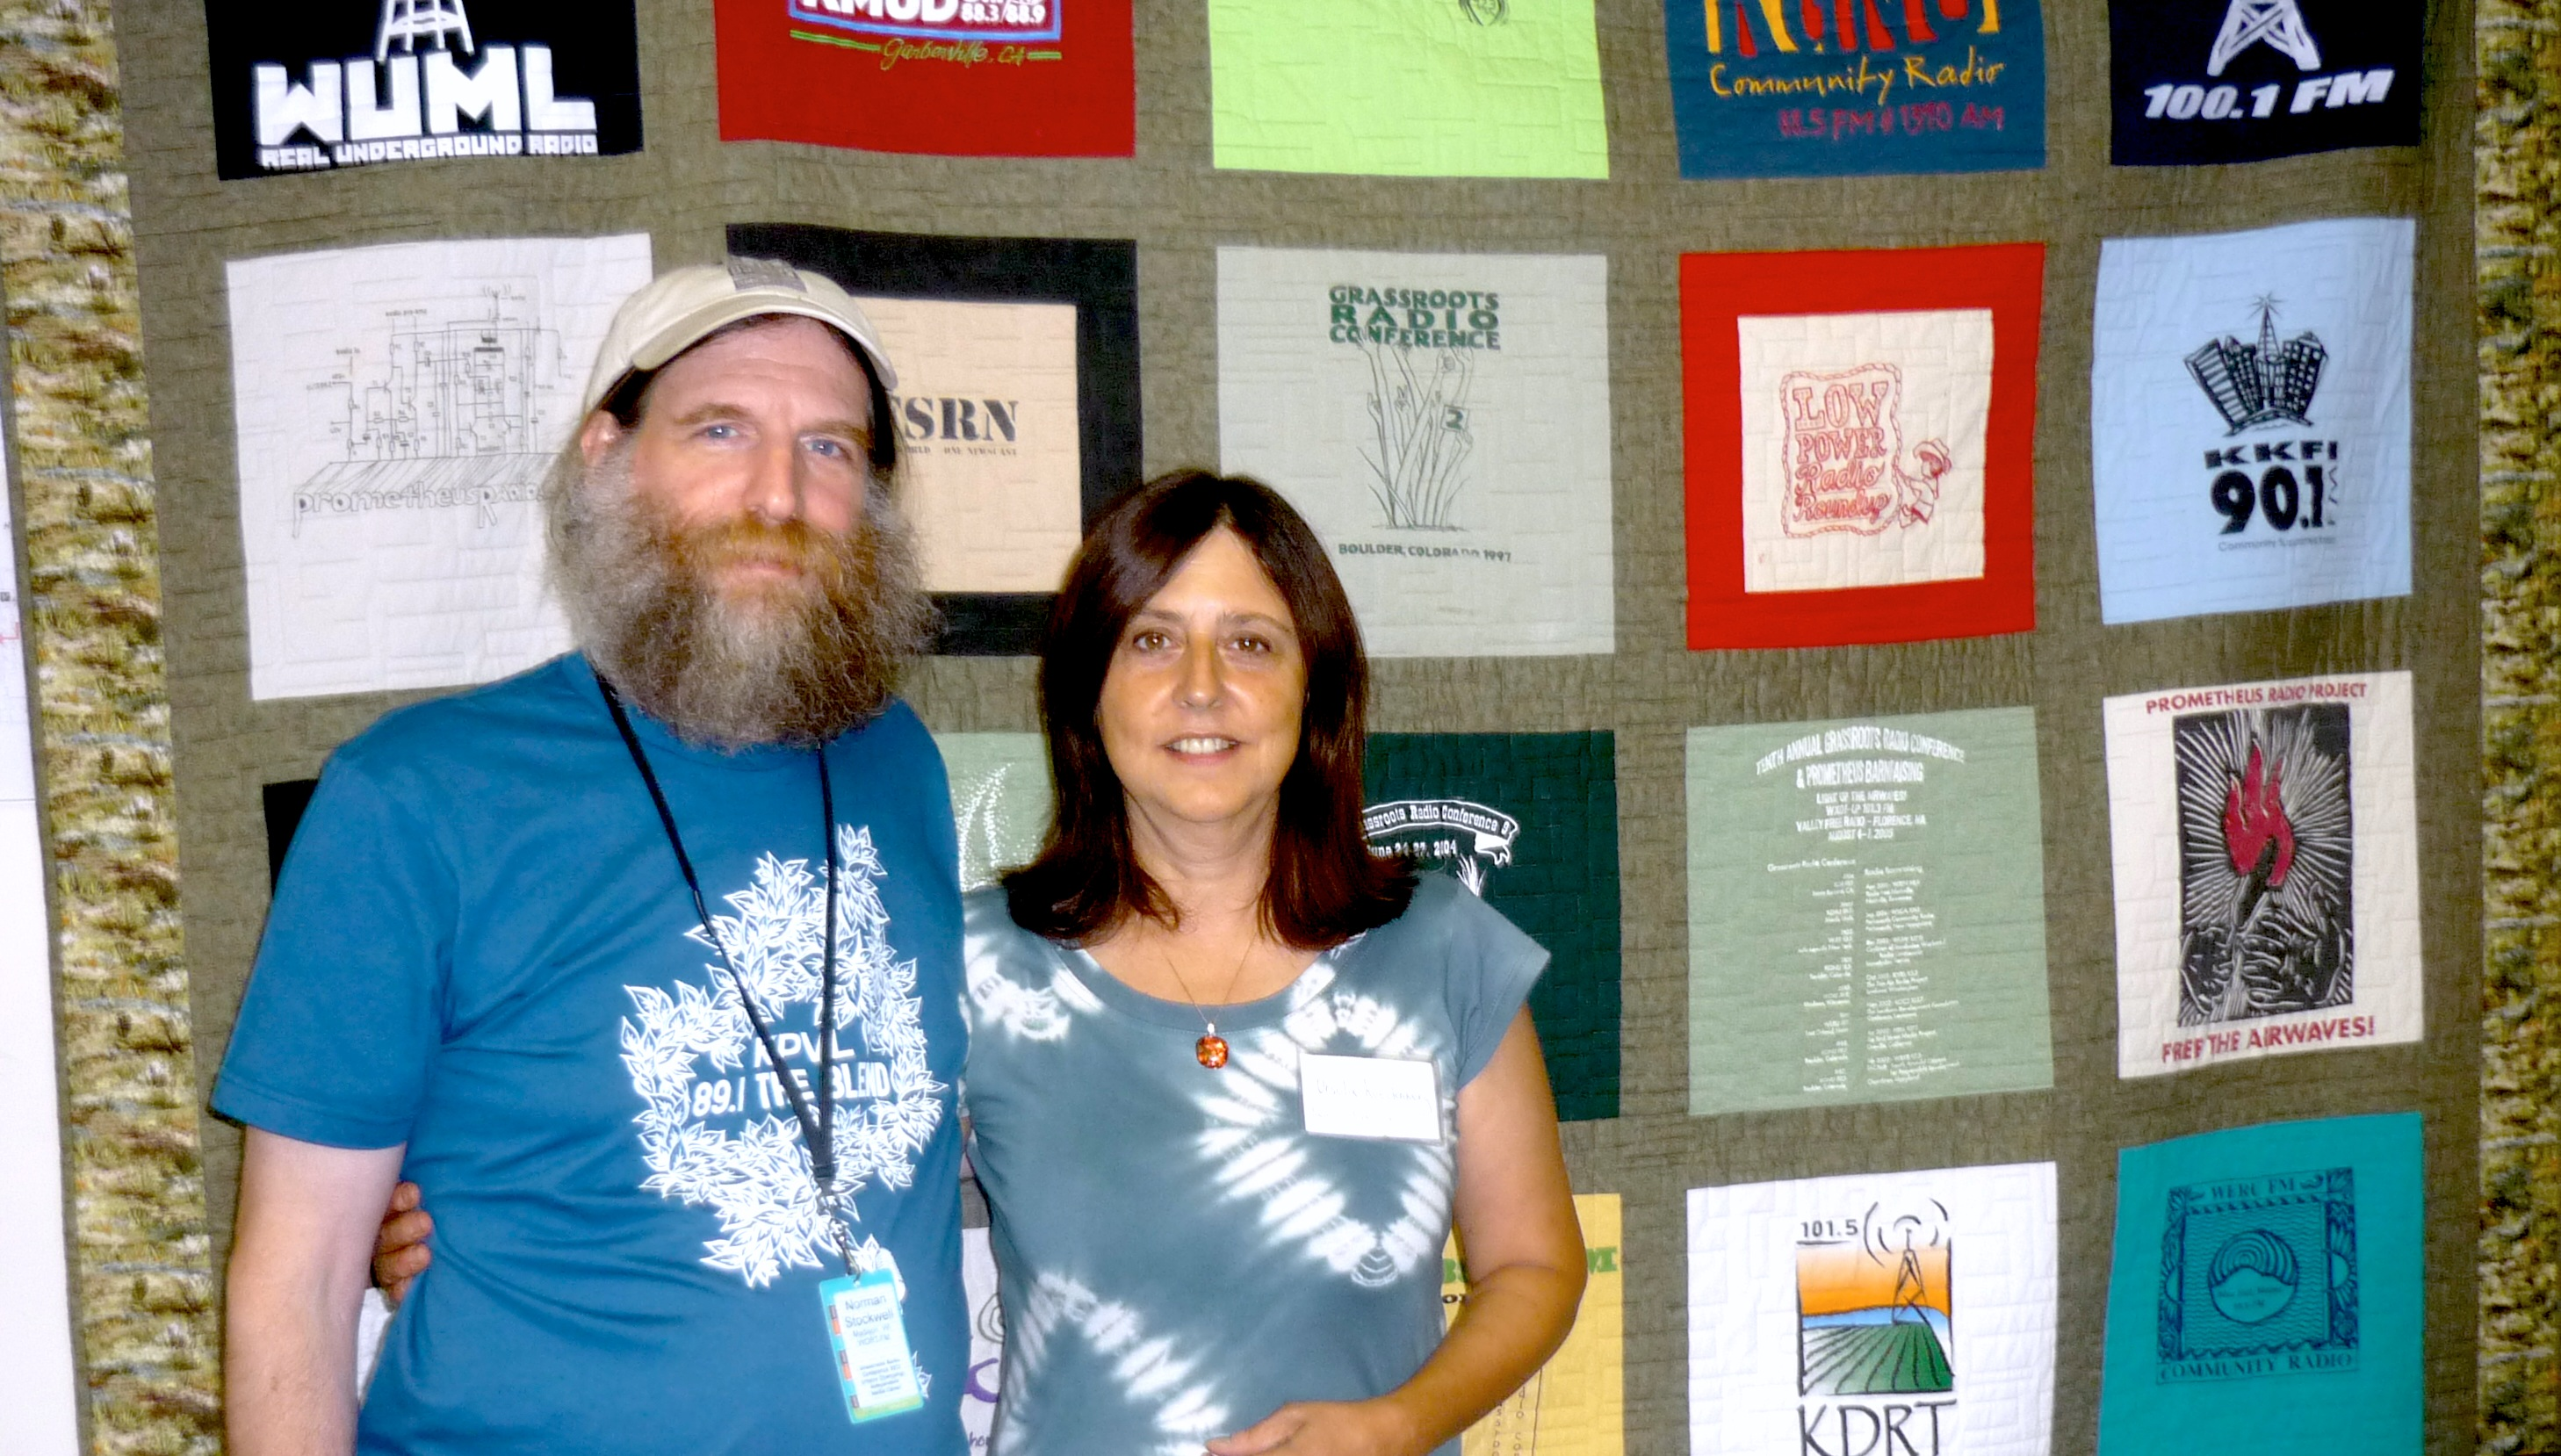 June 27, Urbana, Illinois – Norman Stockwell, WORT (Madison, WI) Operations Coordinator with Pacifica Affiliates Coordinator Ursula Ruedenberg, in front of the GRC Community Radio Quilt. Stockwell had just received Pacifica Network's Annual GRC Outstanding Service to Community Radio at the Pacifica Affiliates Meeting during GRC Conference.